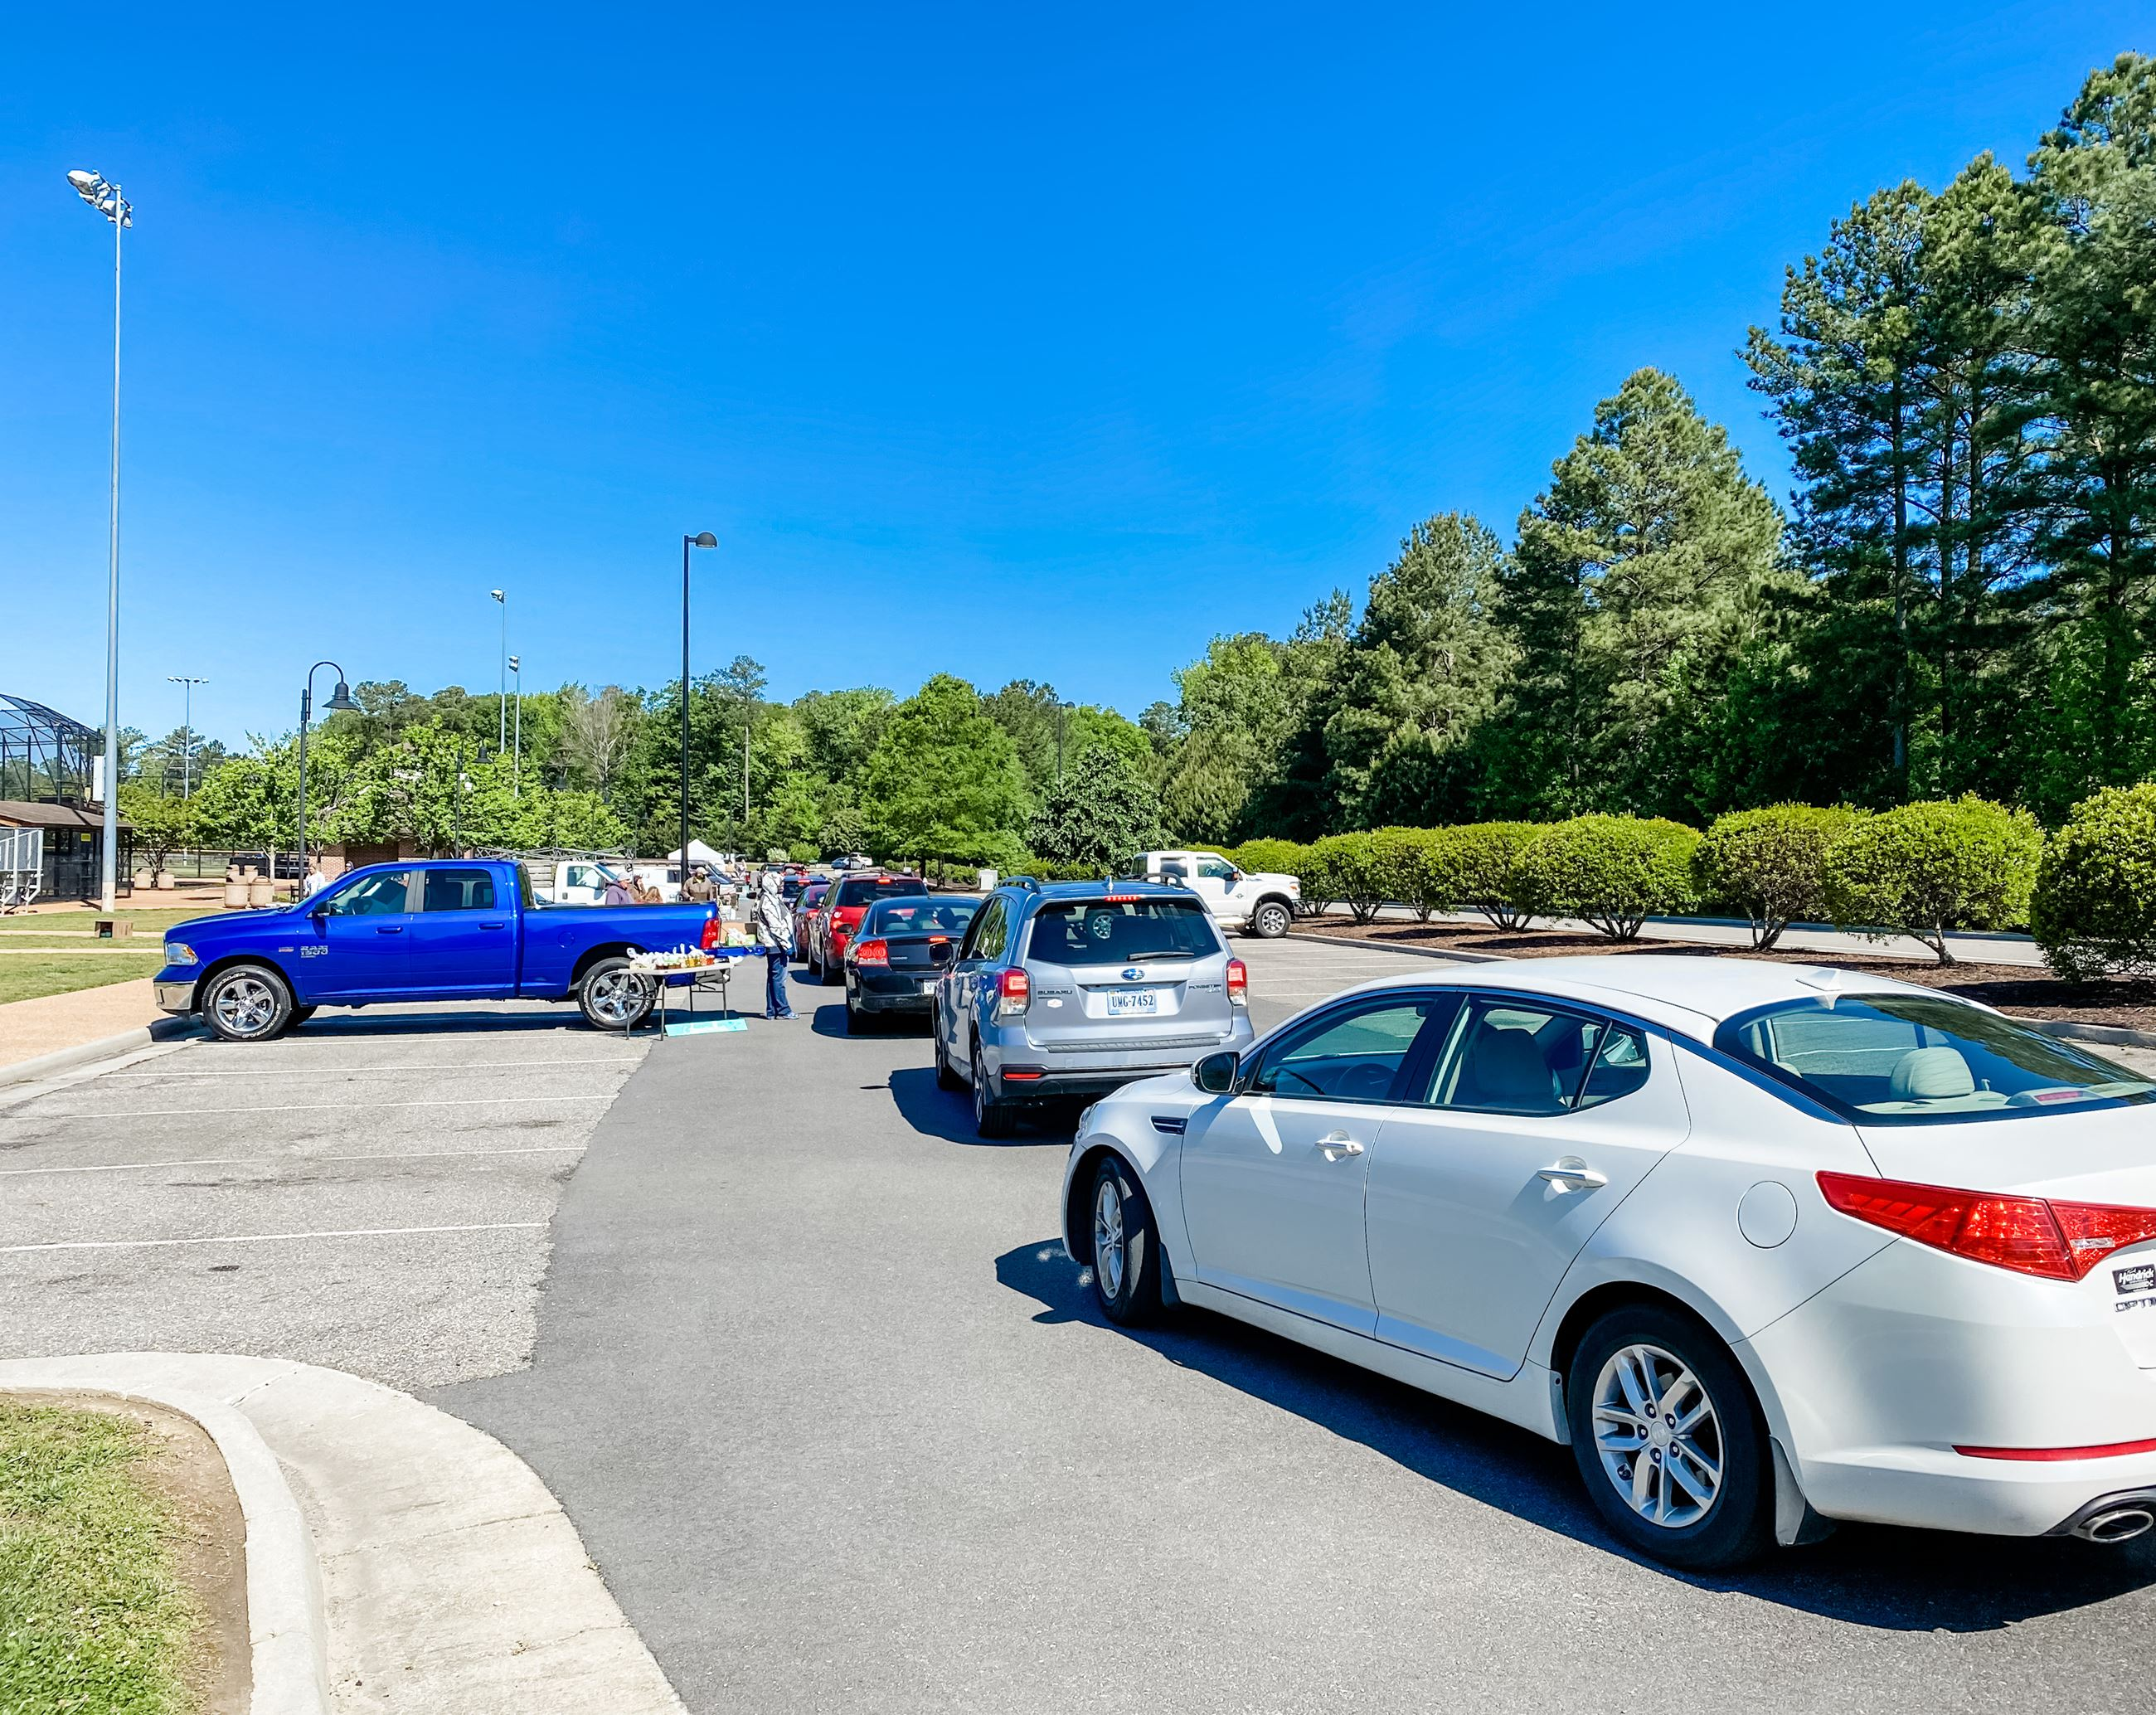 Drivethru Market line of cars at the McReynolds Athletic Complex